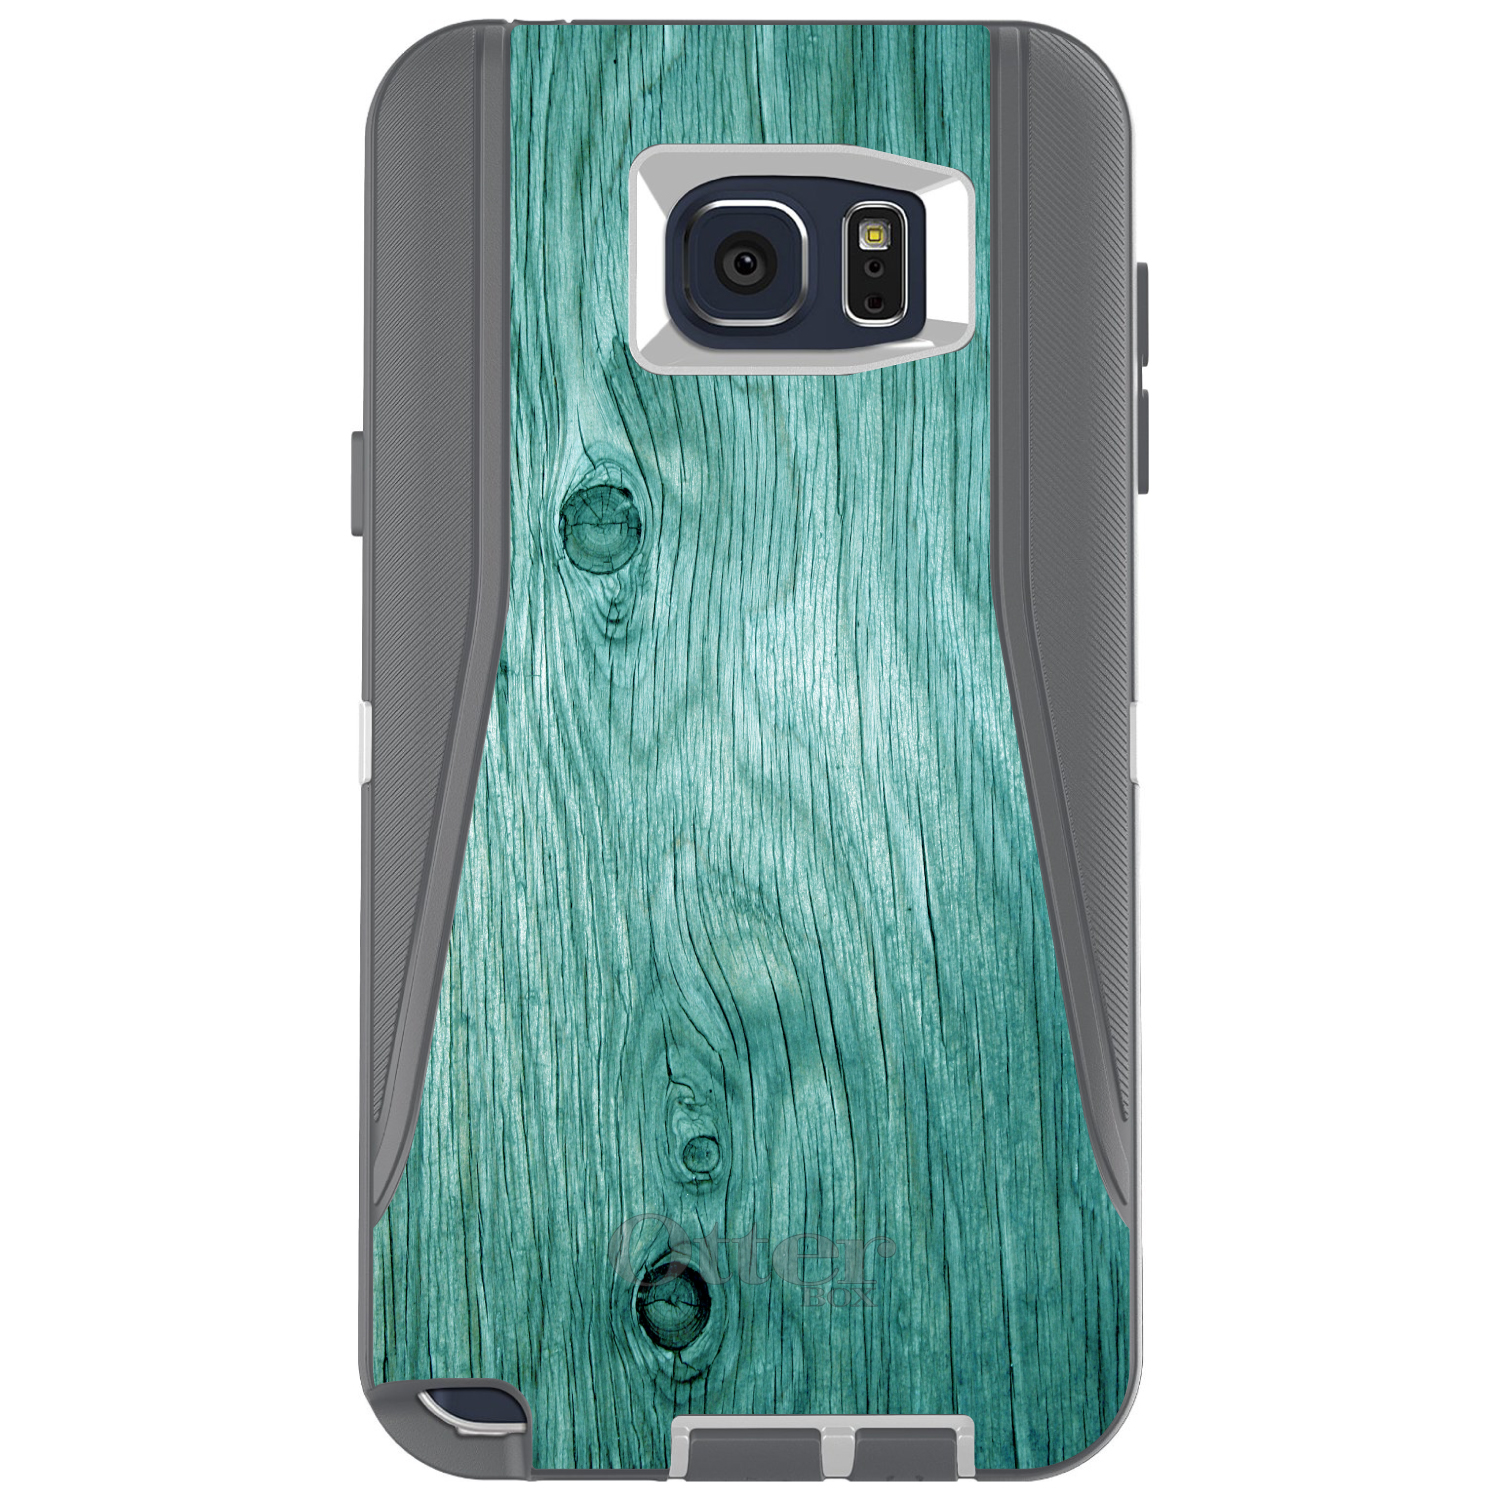 DistinctInk™ Custom Grey OtterBox Defender Series Case for Samsung Galaxy Note 5 - Teal Weathered Wood Grain Print